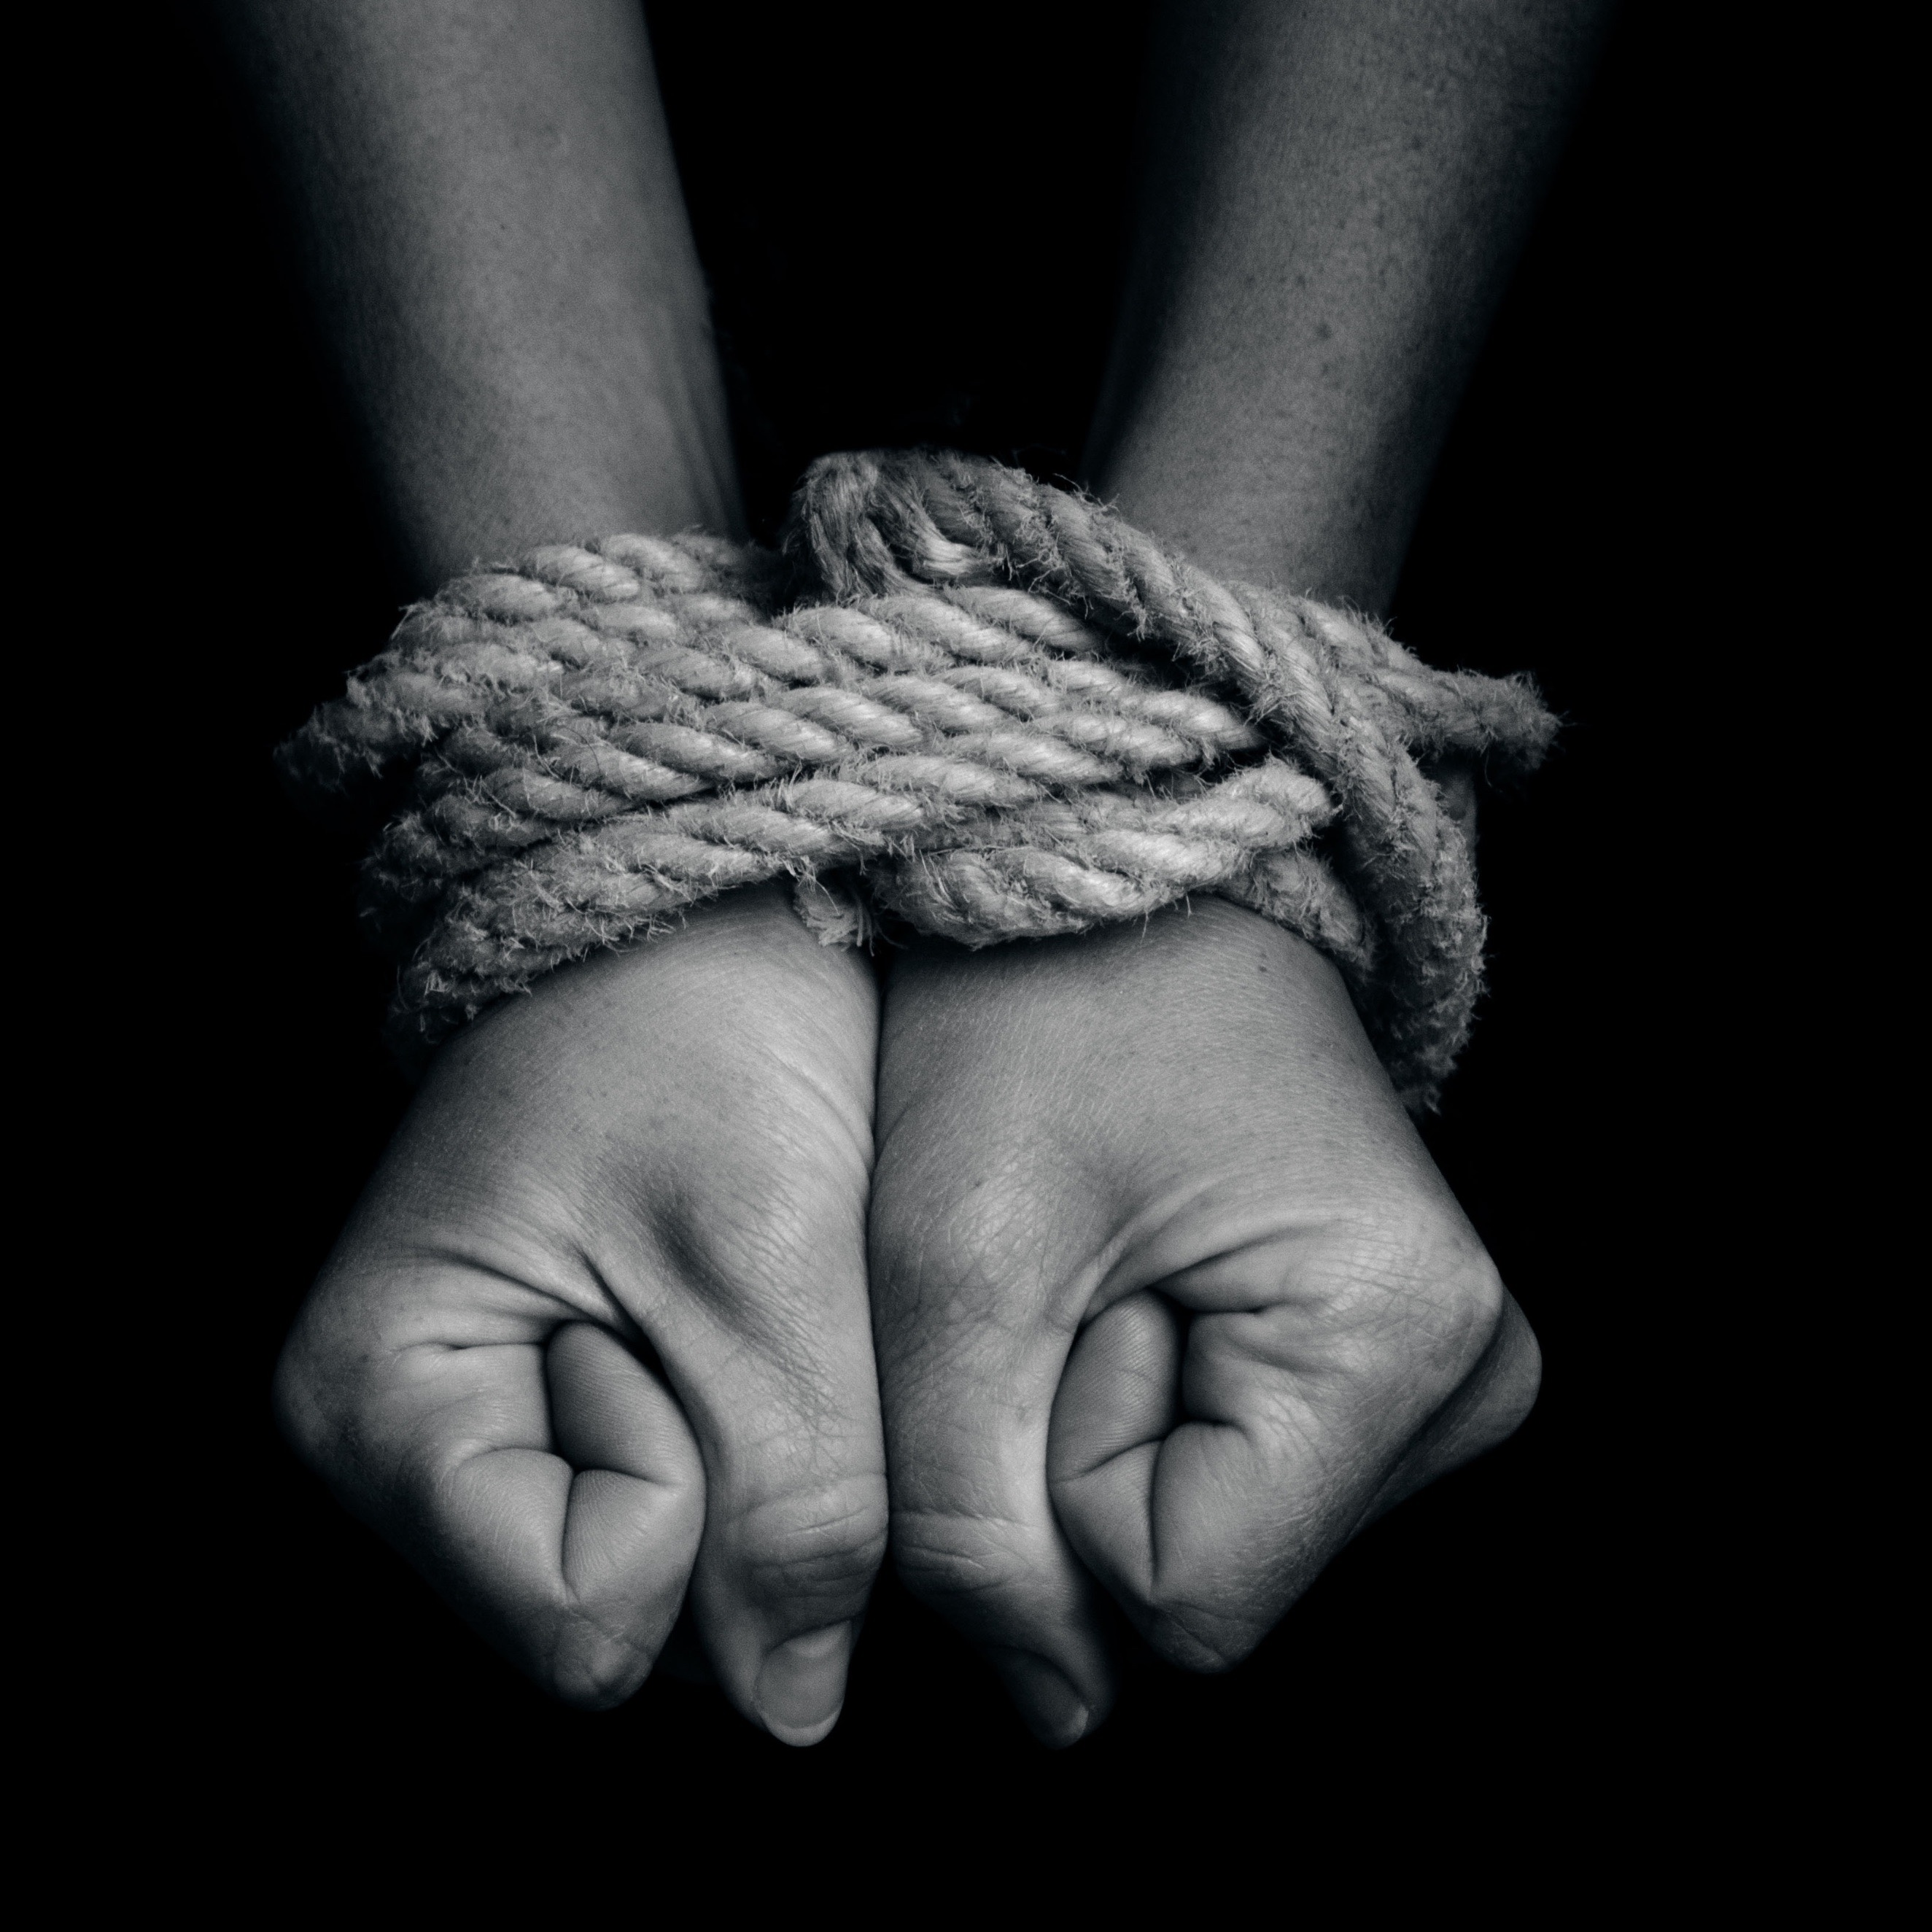 Facts You Didn't Know about Human Trafficking | USC Social Work